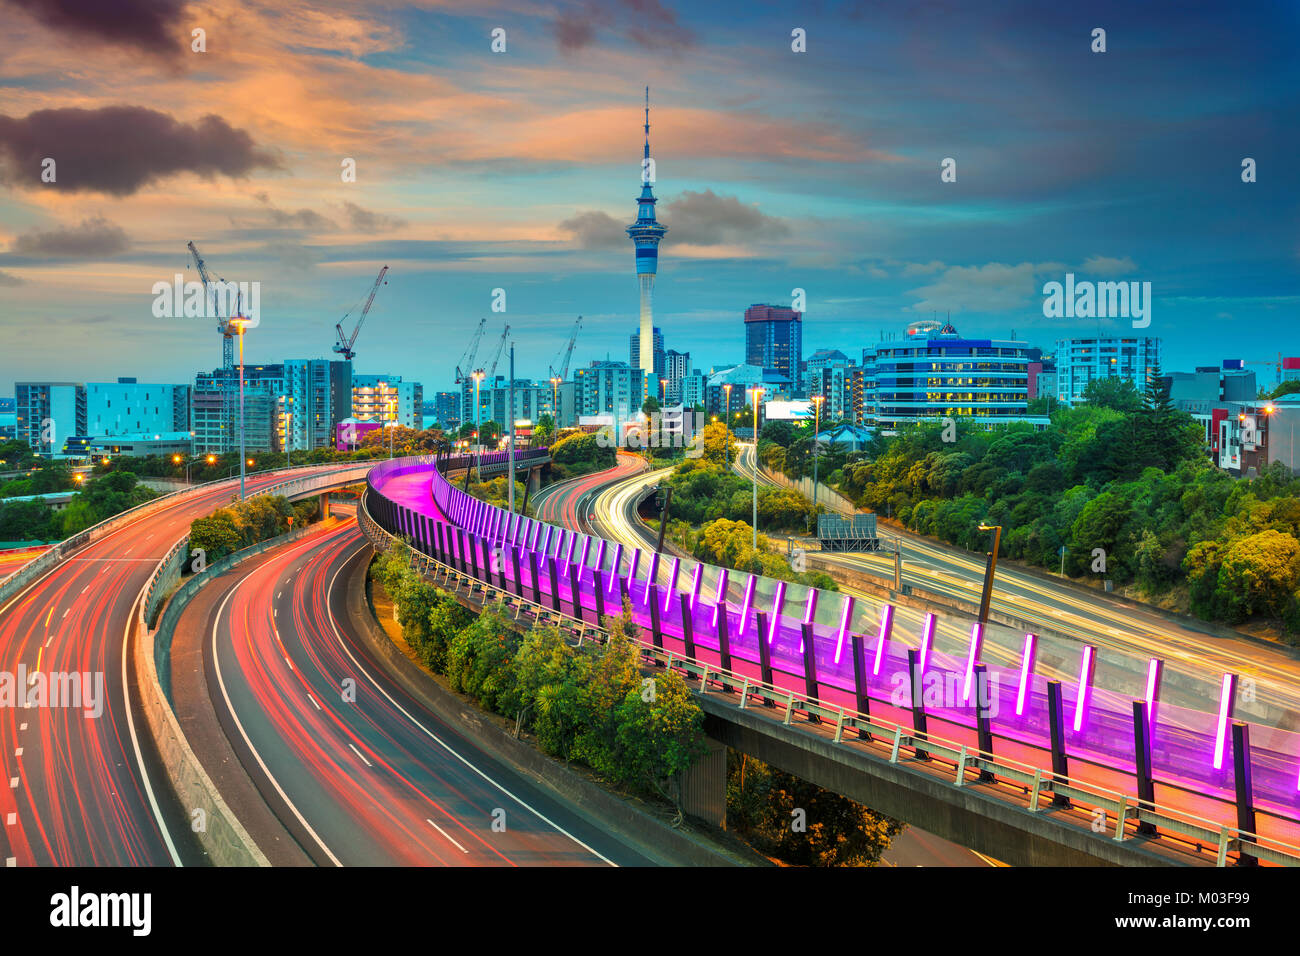 Auckland. Cityscape image of Auckland skyline, New Zealand at sunset. - Stock Image